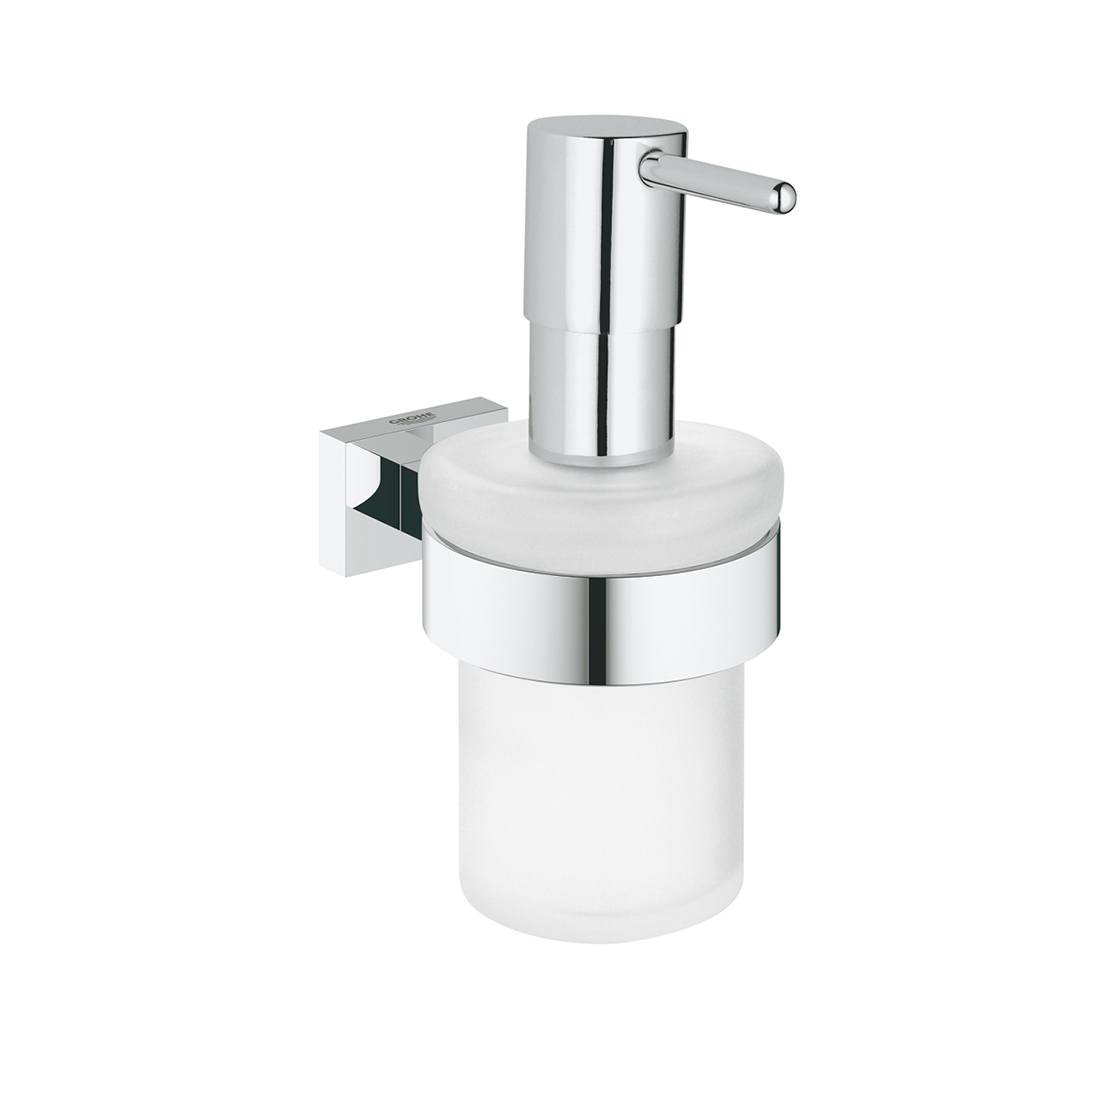 Grohe 40756001 Essentials Cube Soap Dispenser With Holder